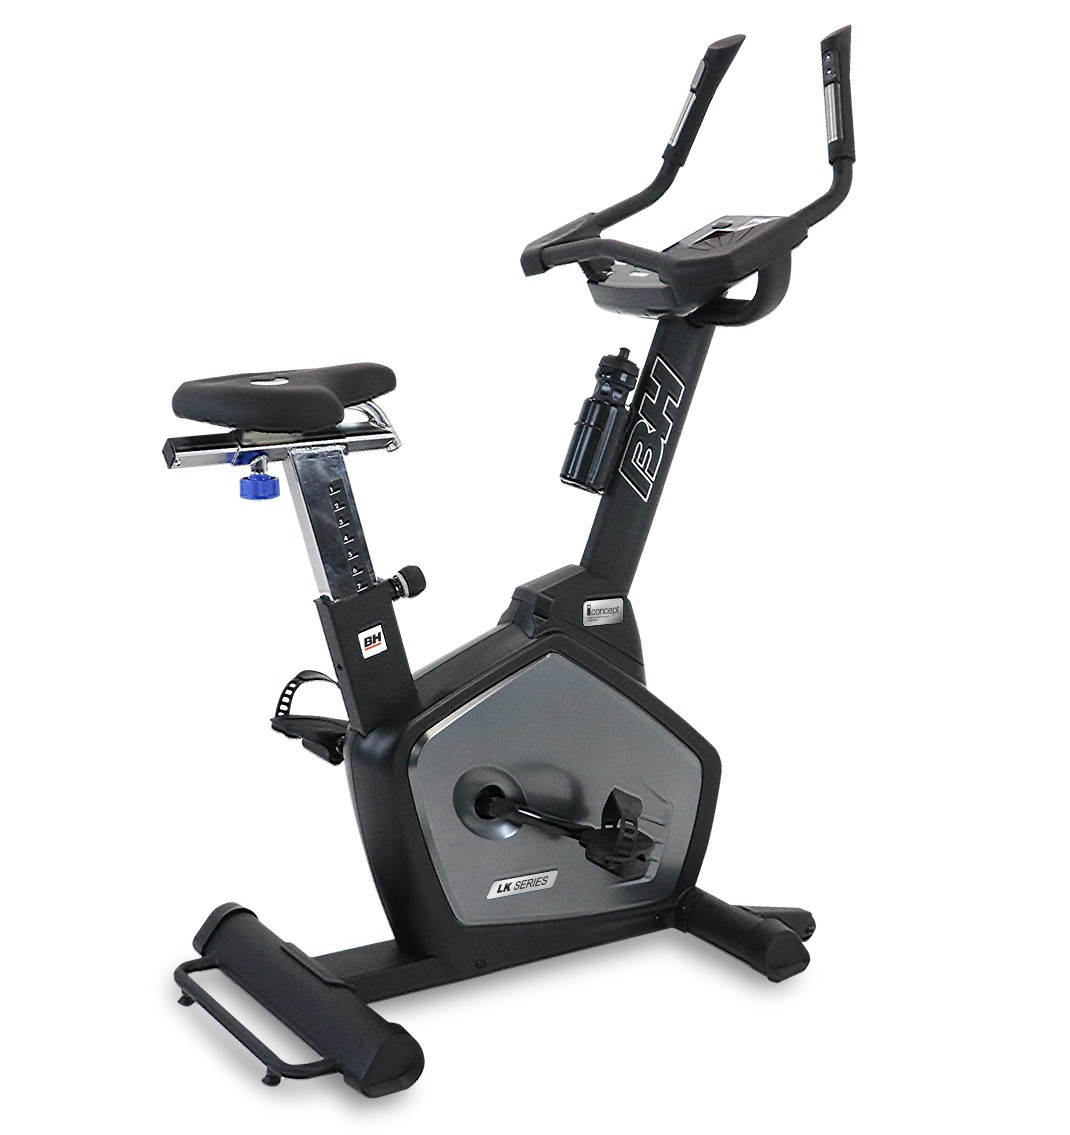 Commercial Exercise Equipment Brands: LK500Ui Upright Cycle-New)